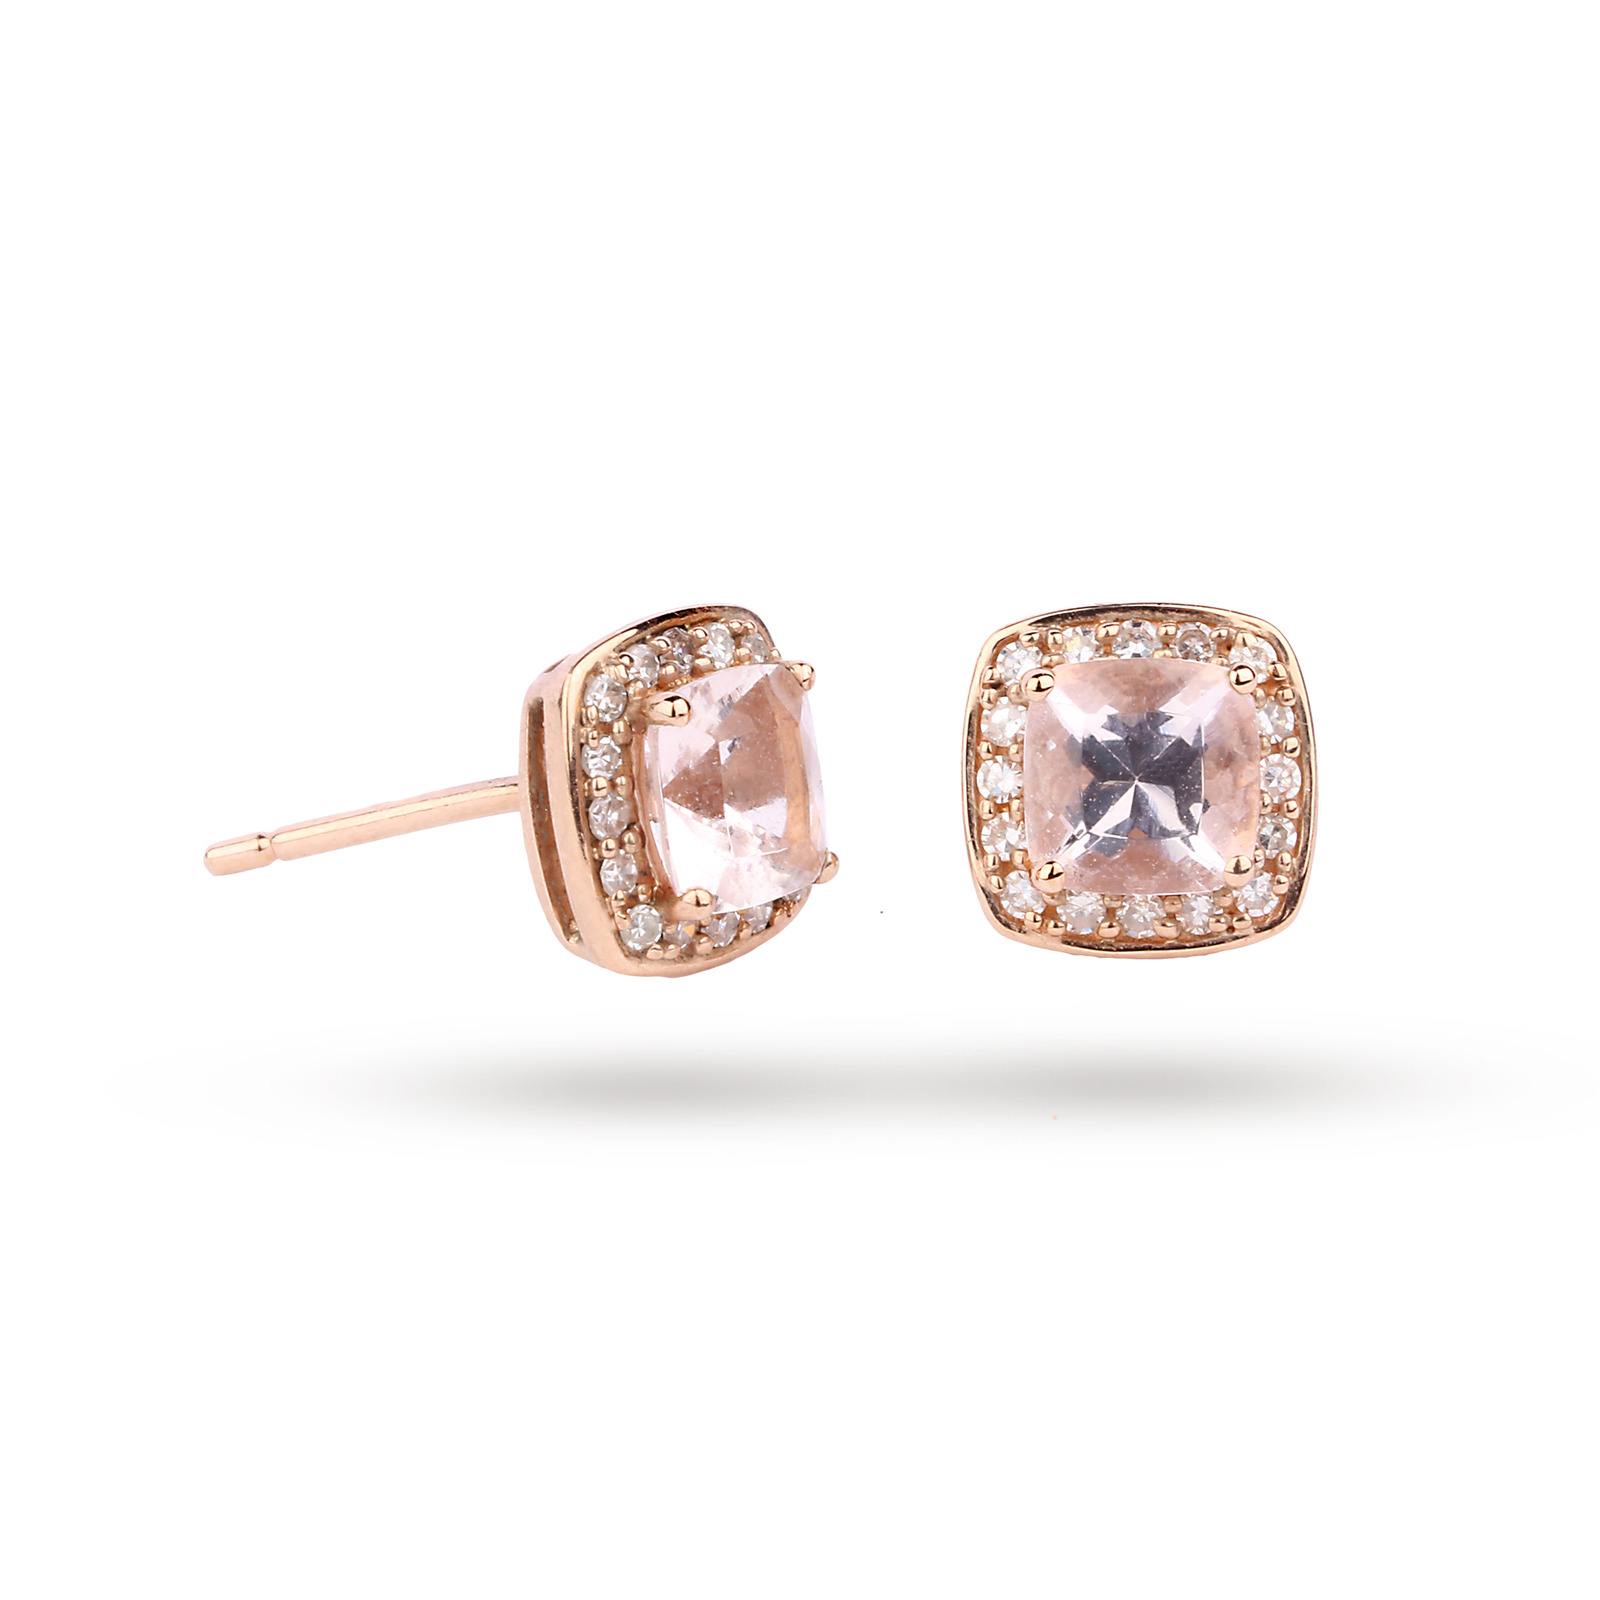 9ct Rose Gold Cushion Cut Morganite Stud Earrings